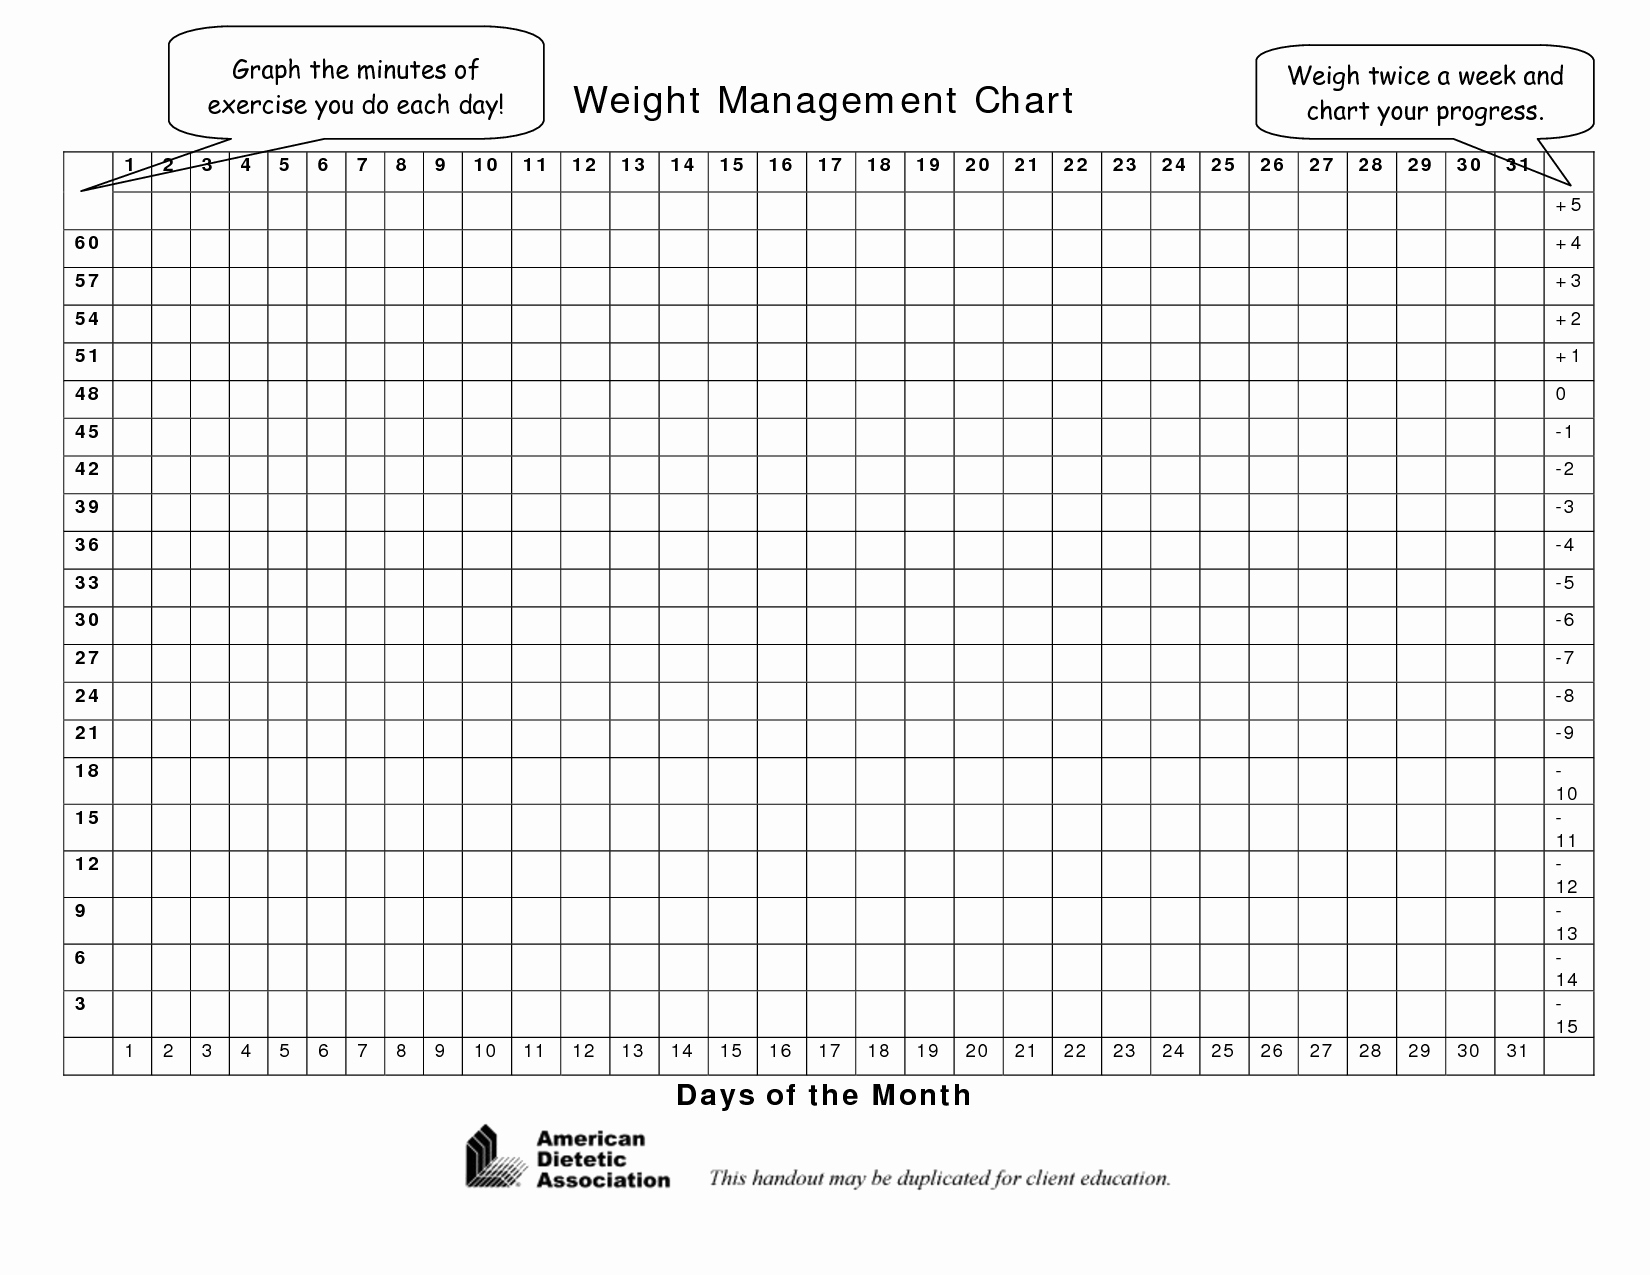 Printable Weight Loss Graph | Ellipsis - Printable Weight Loss Charts Free